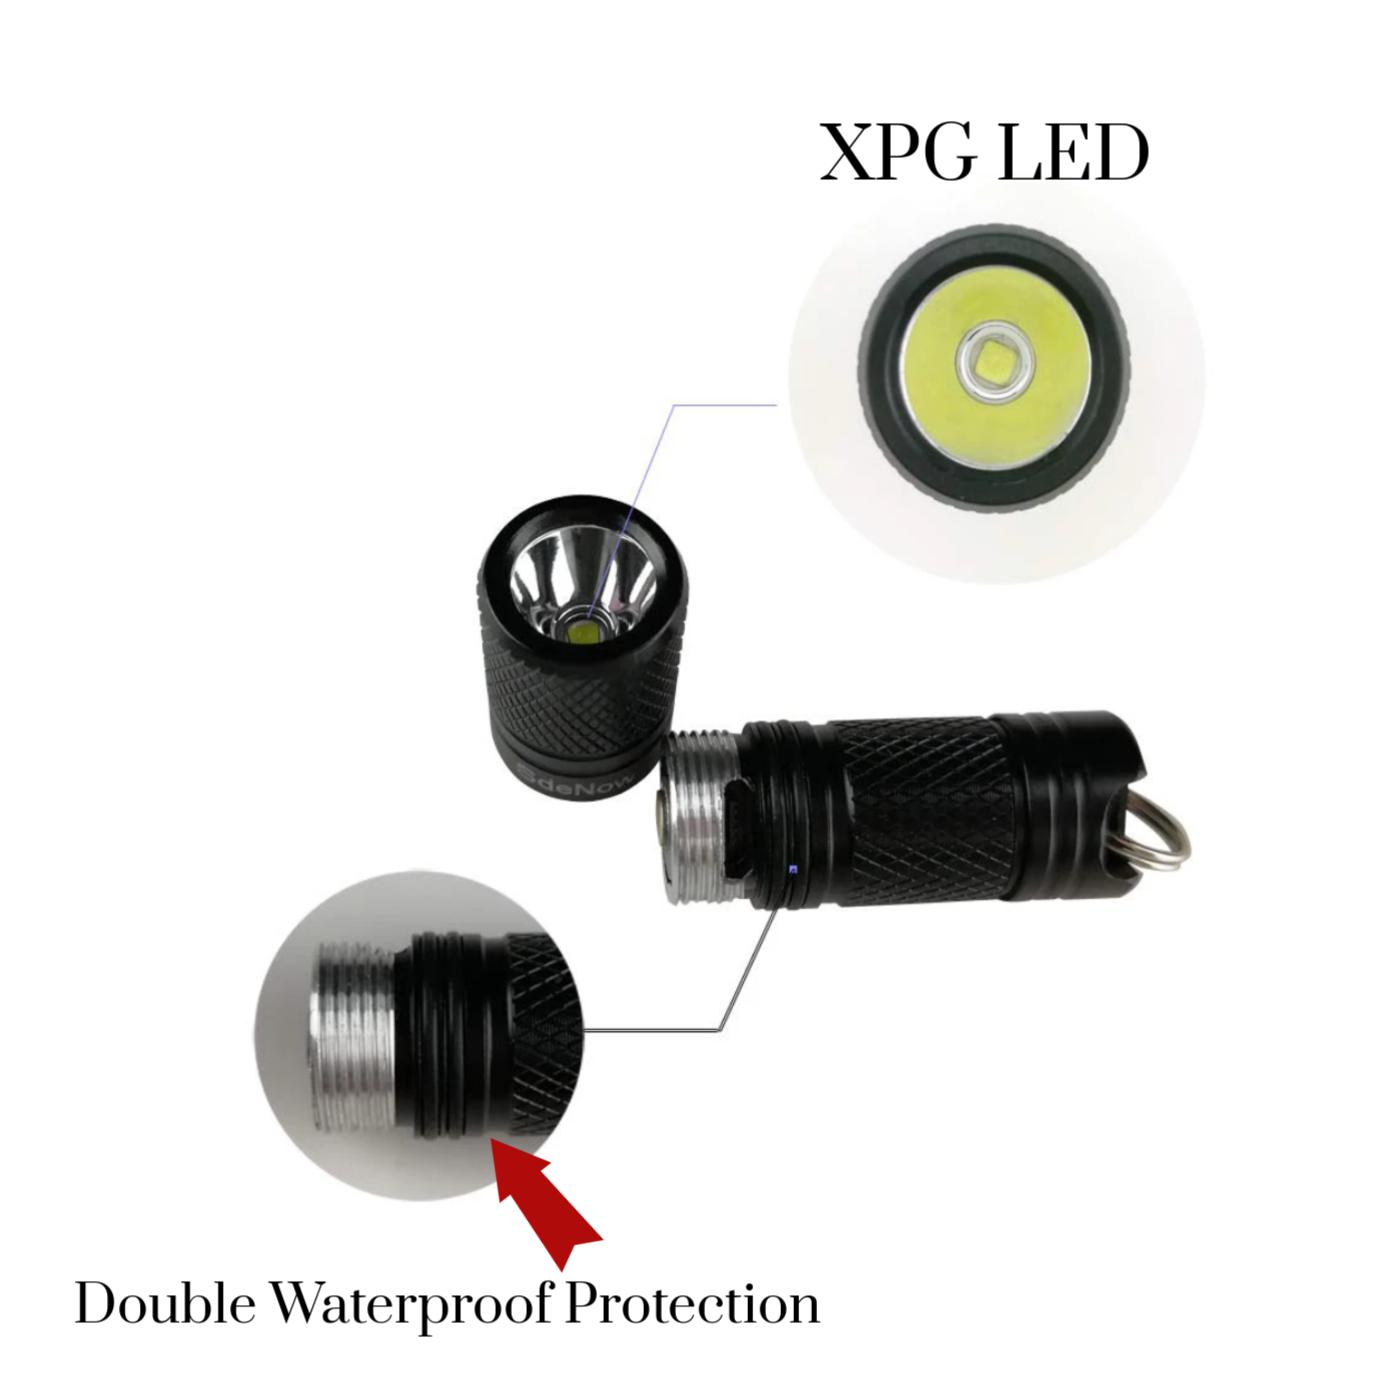 ApolloBright - USB Pocket Flashlight (Original Price)